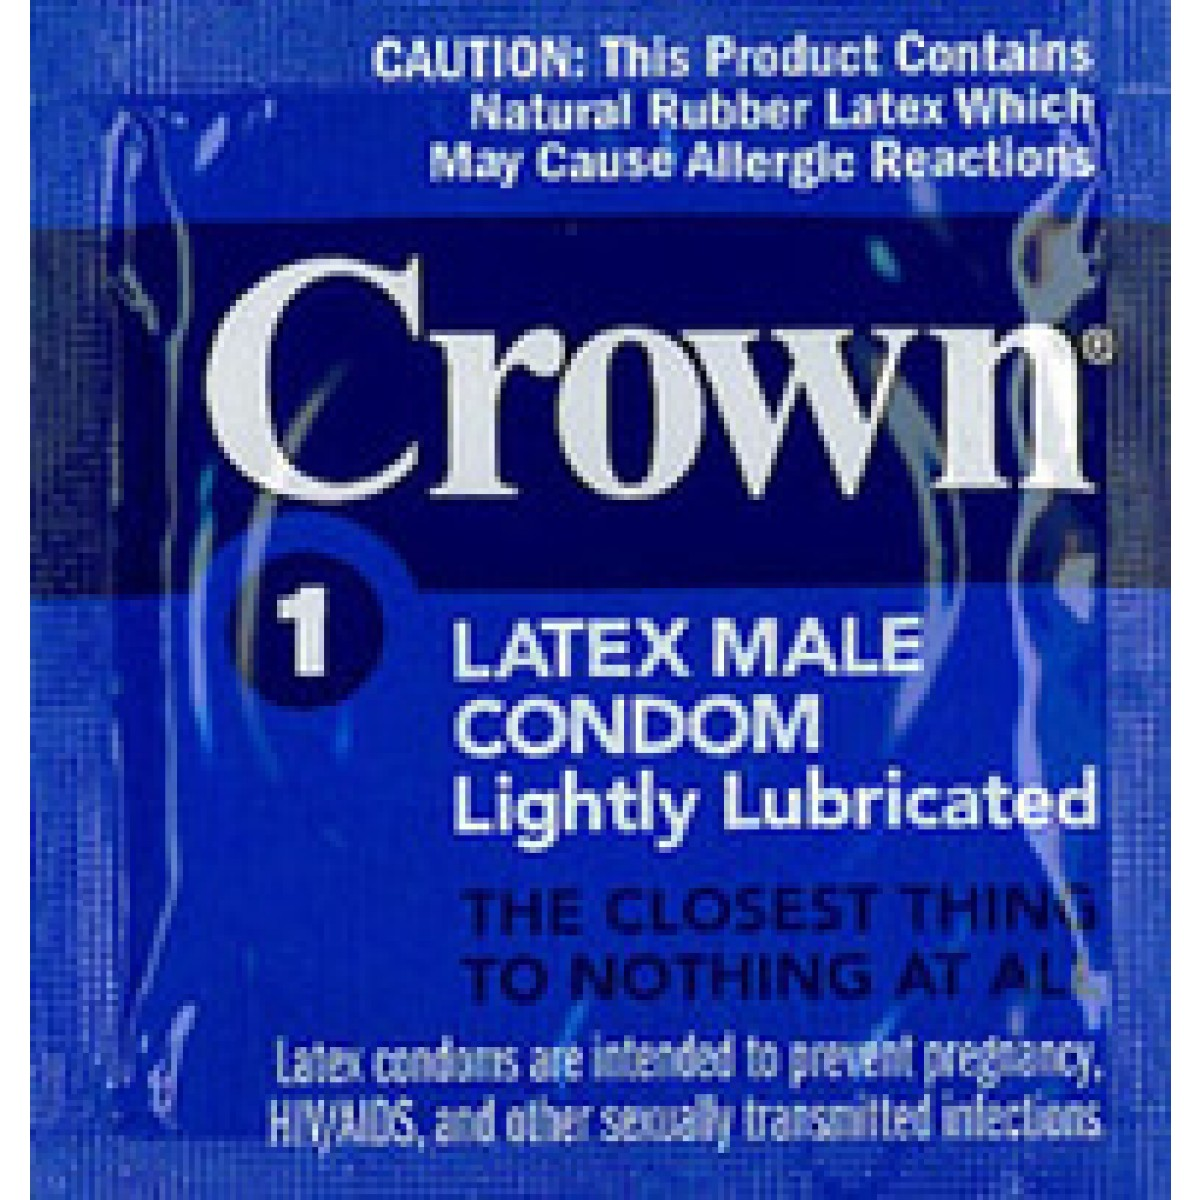 Crown Lubricated Condoms